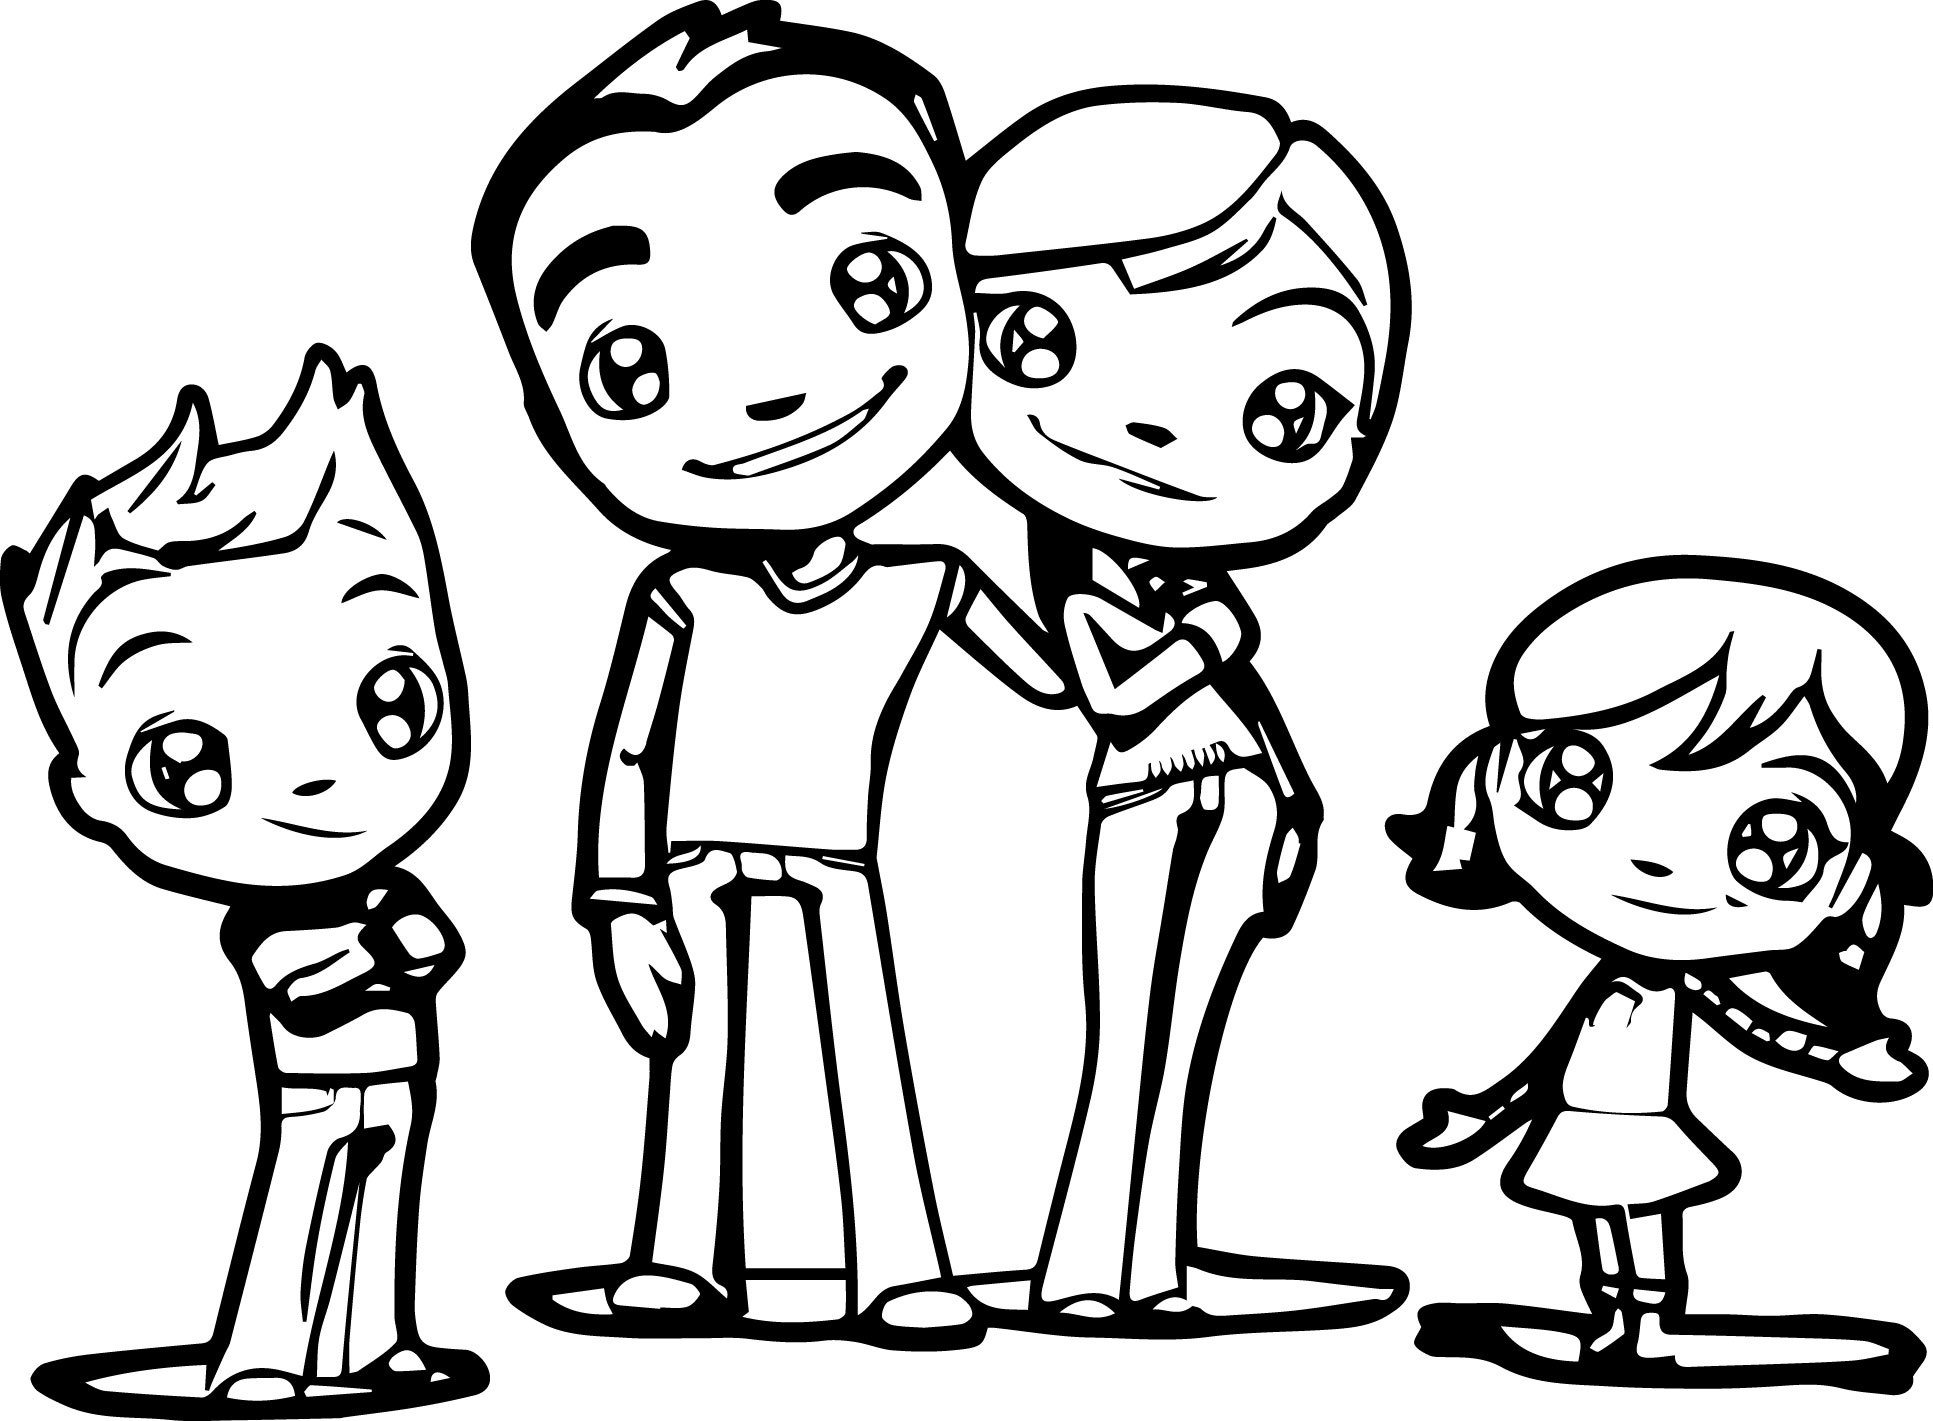 coloring family picture family coloring pages coloring pages to download and print coloring picture family